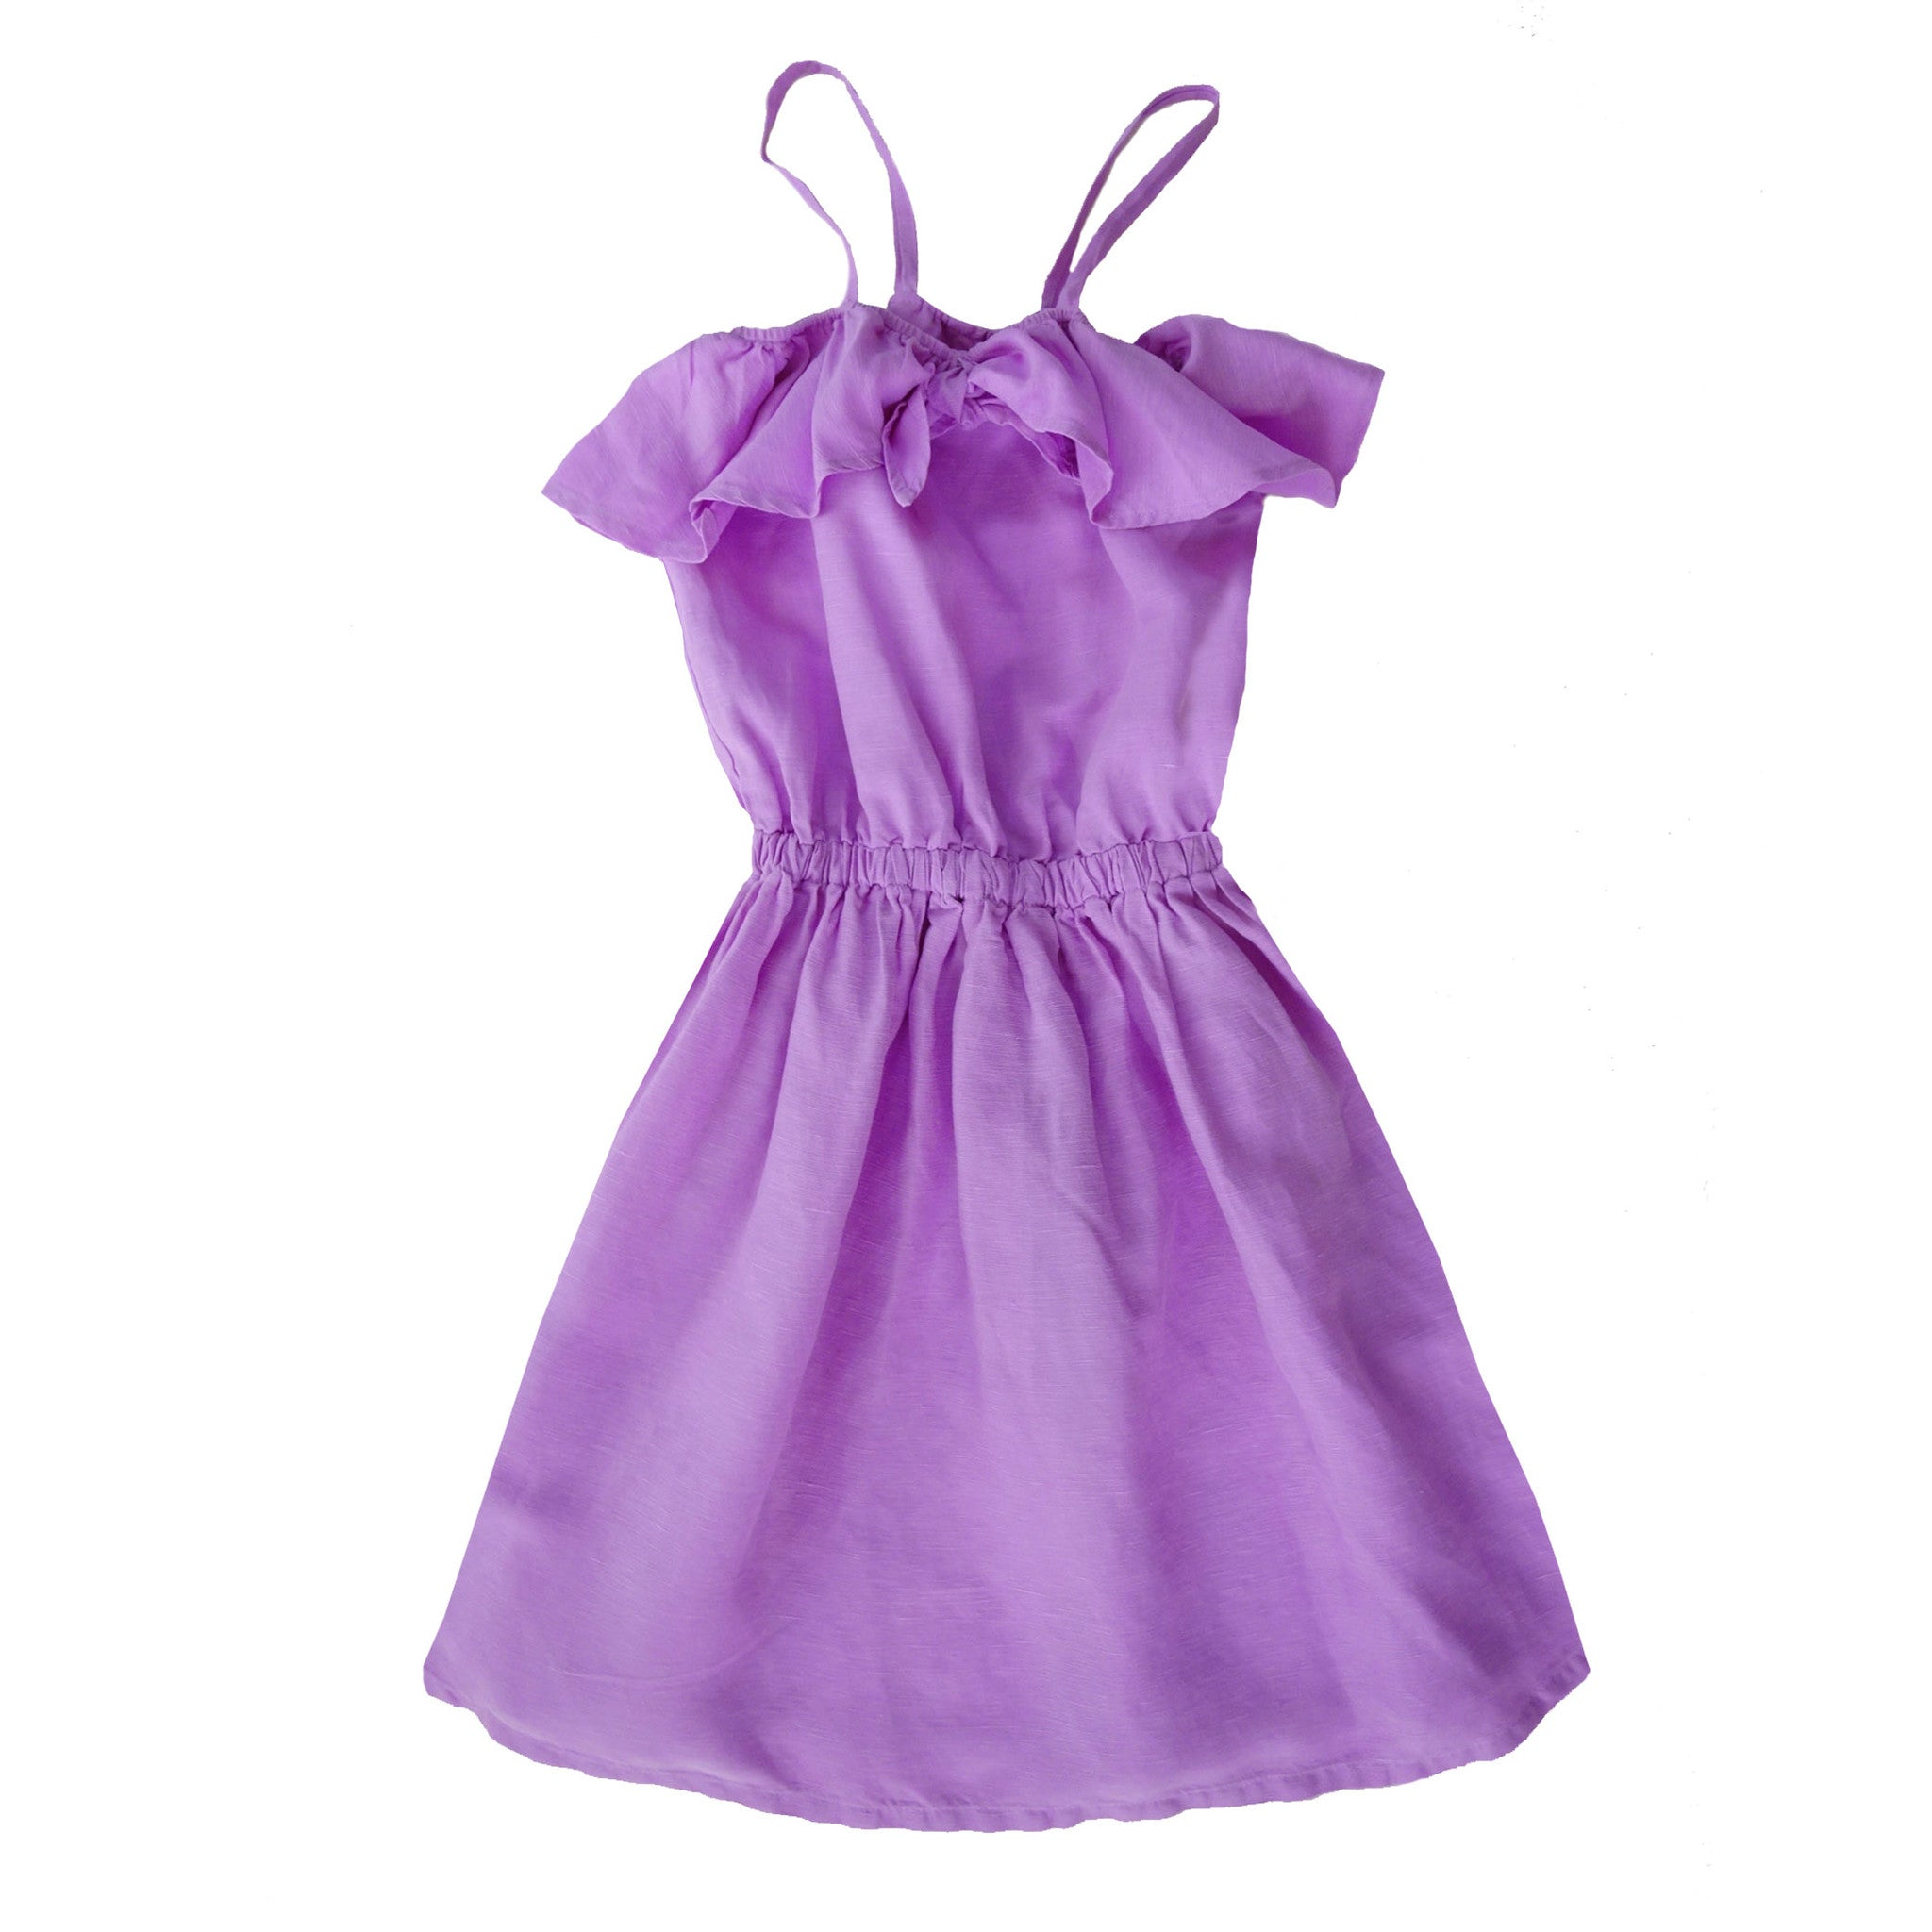 Nico Nico Luau Knot Girl's Dress in Orchid | BIEN BIEN